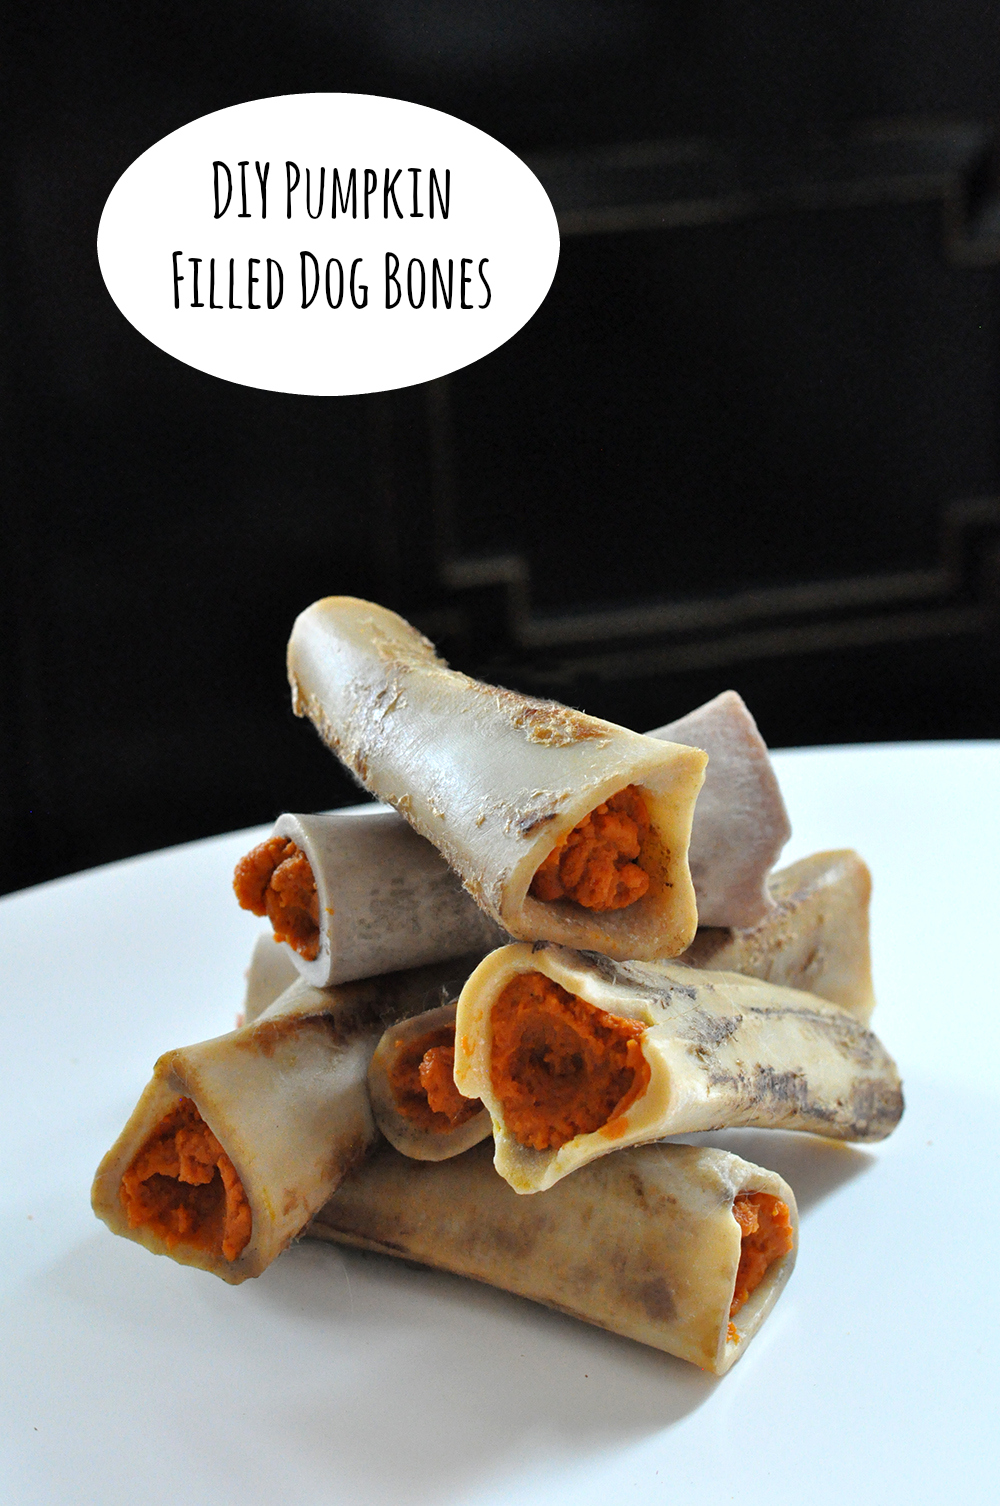 diy pumpkin filled dog bones